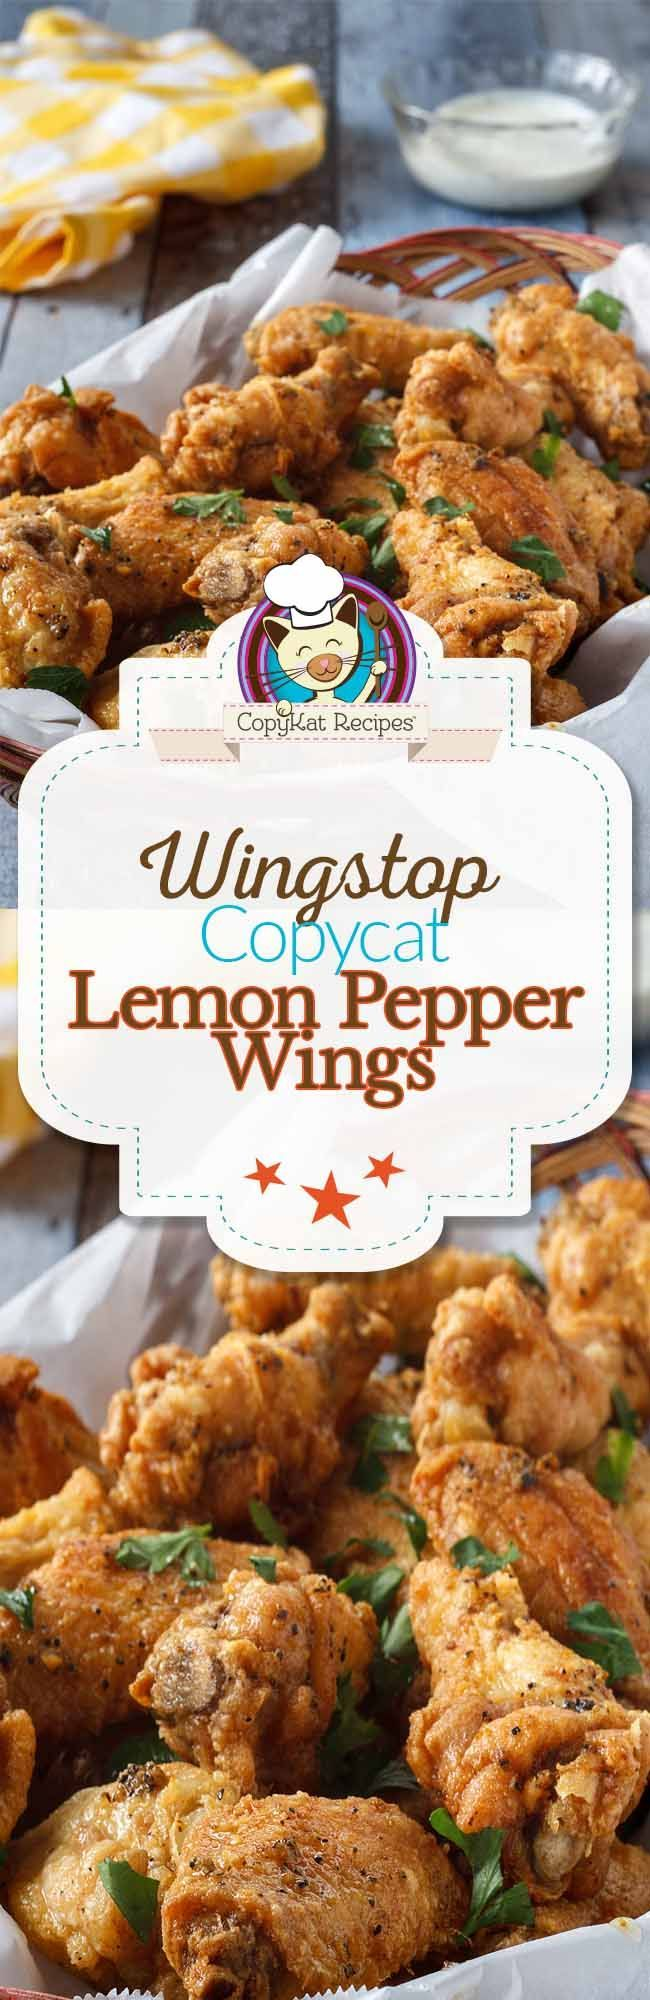 You can recreate these famous wings from Wingstop!  Enjoy making the best Lemon Pepper wings at home with this copycat ercipe.